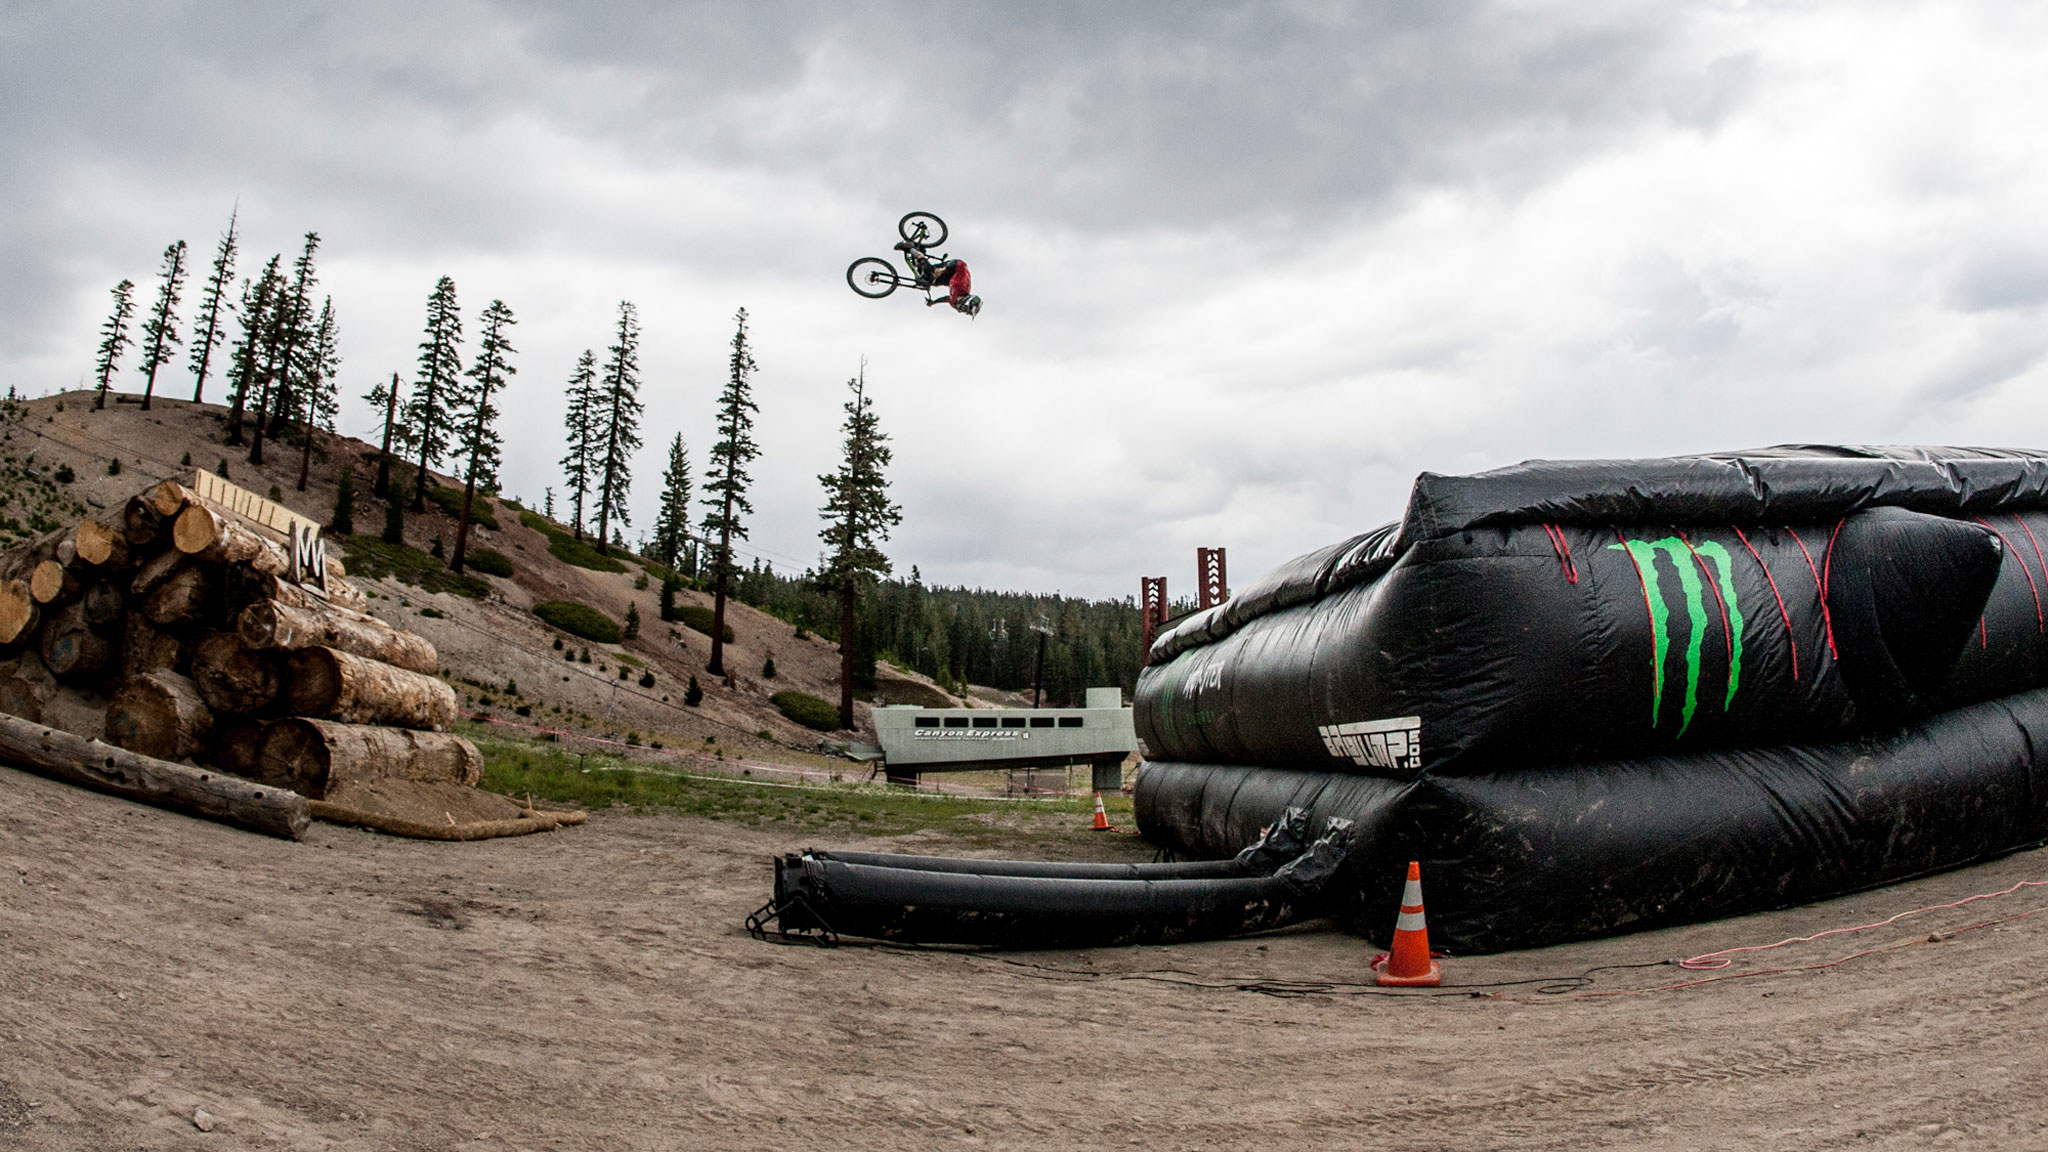 Zink practices getting upside down at distance for his world-record attempt Thursday at Mammoth.